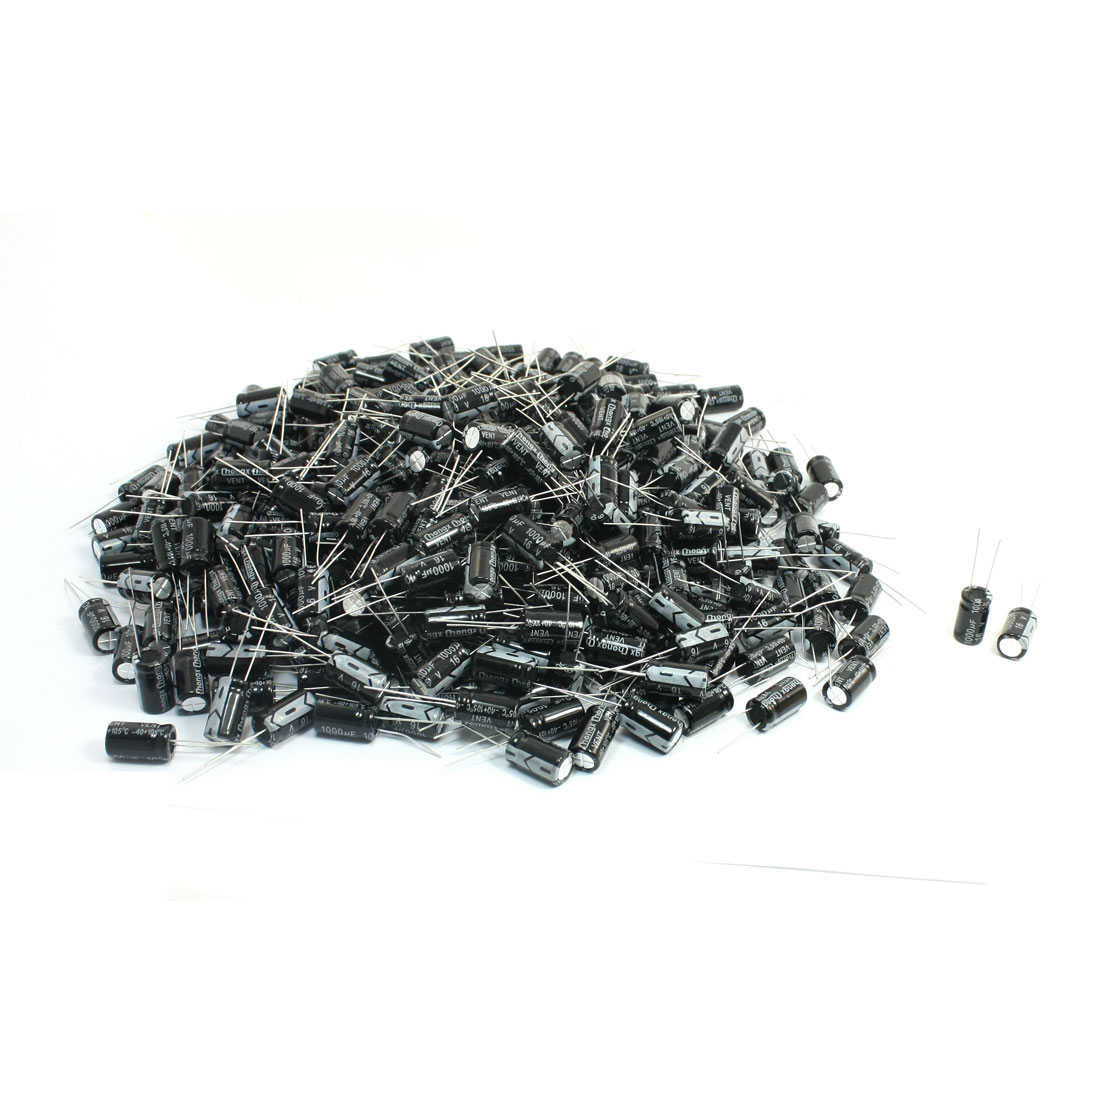 Black Aluminum 16V 1000uF 17mm x 10mm Electrolytic Capacitors 500Pcs